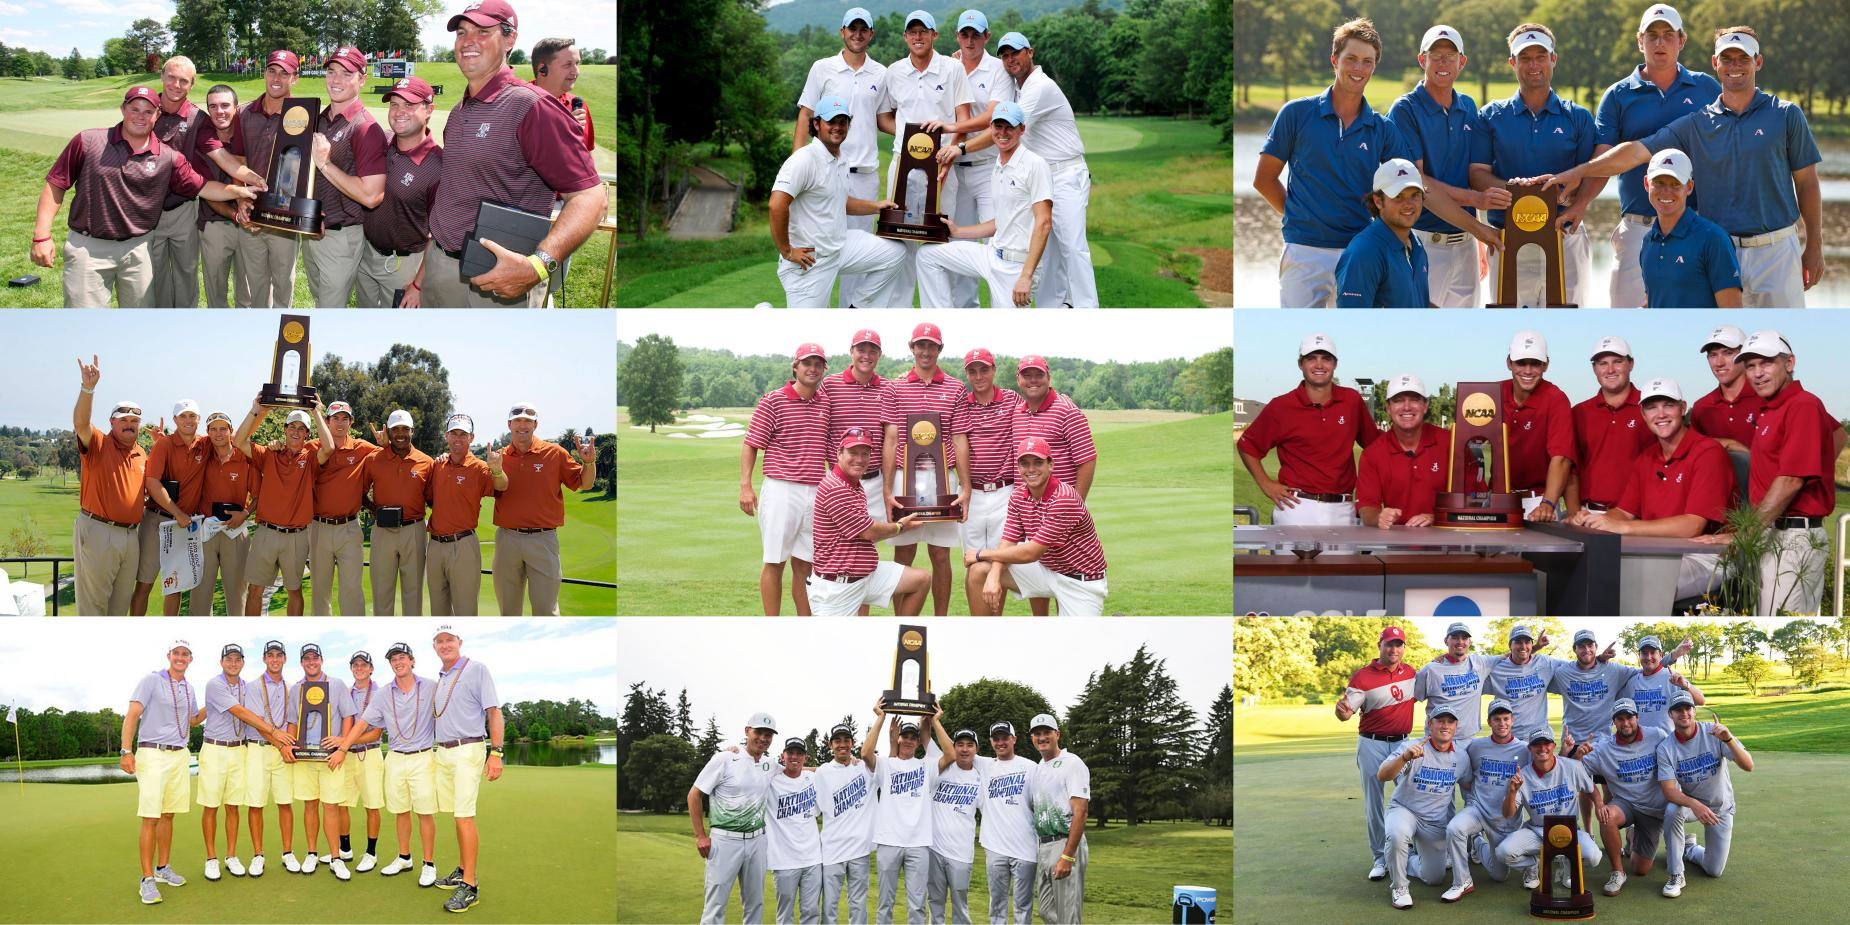 ncaa-mens-team-champs-2009-2017-collage.jpg